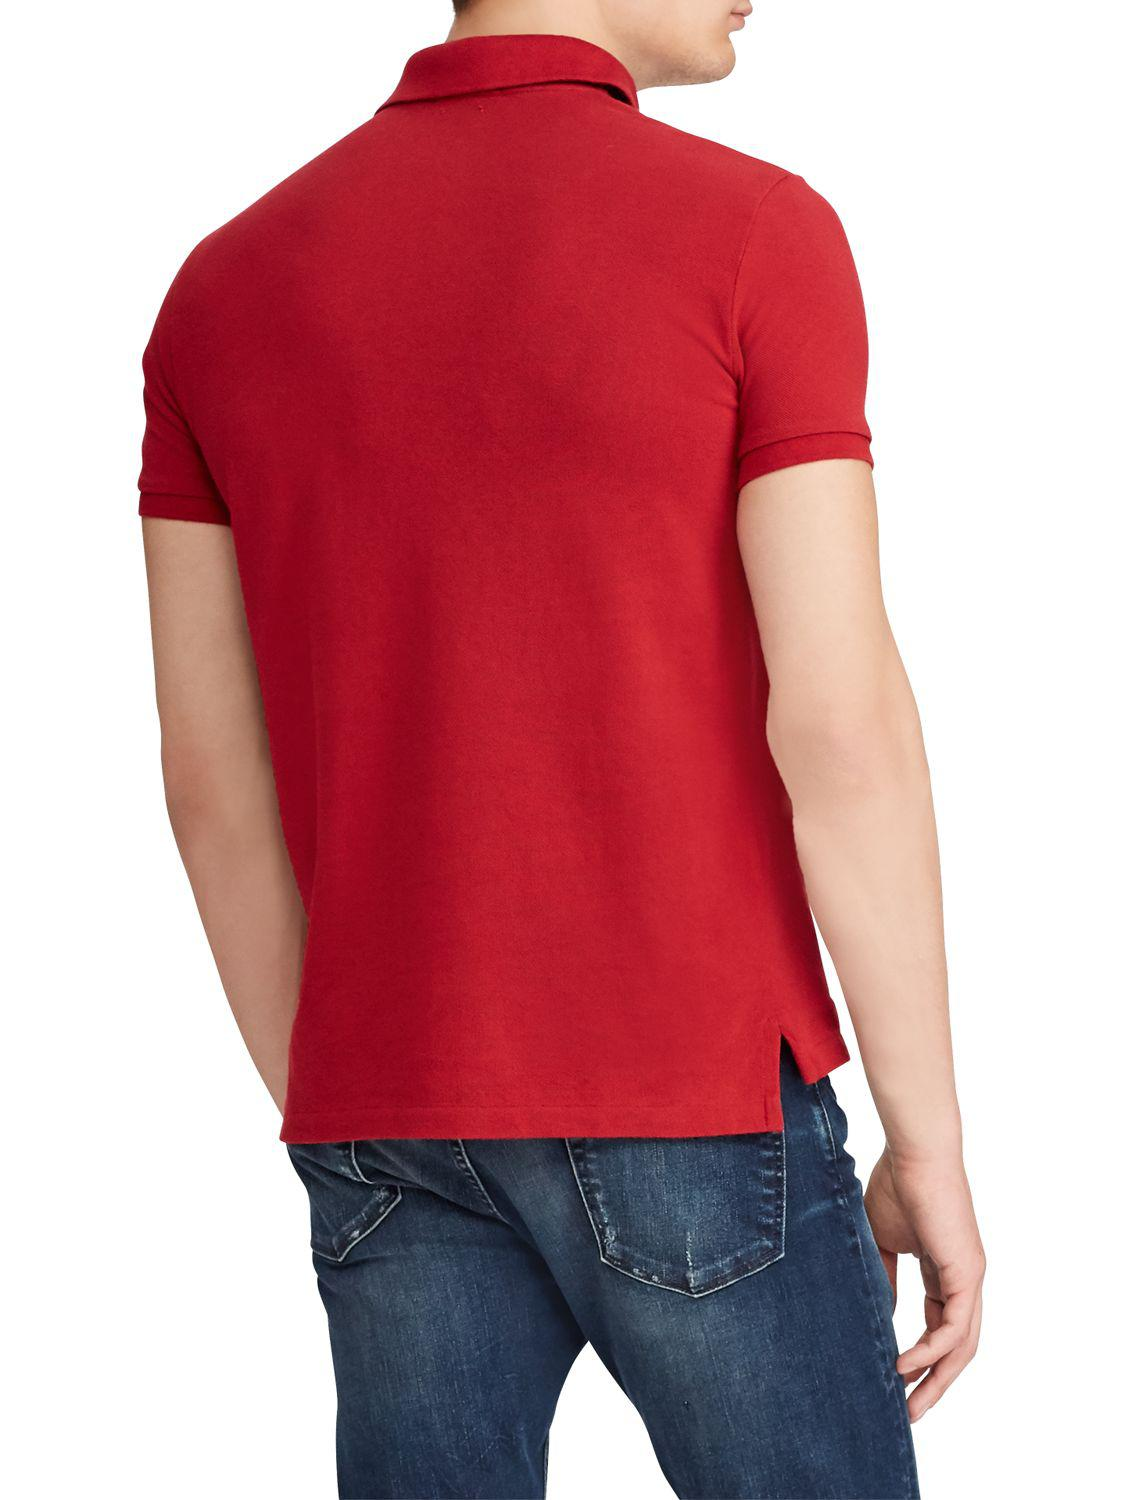 b82cf7004 Ralph Lauren. Men's Red Polo Slim Fit Stretch Mesh Polo Shirt. £52 From John  Lewis and Partners